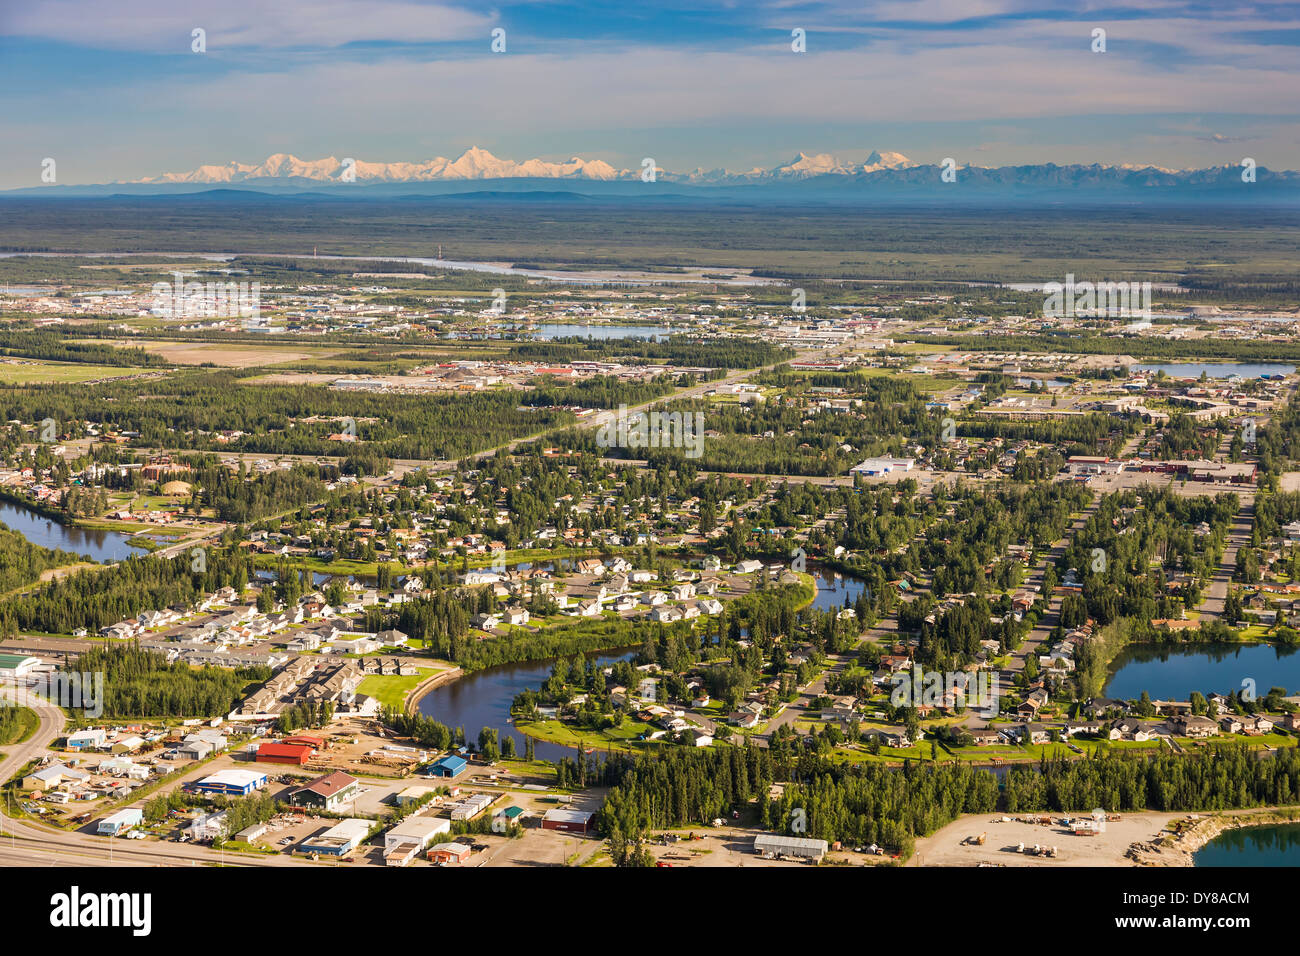 The City Of Fairbanks Situated In The Tanana Valley Flats With The Alaska Range Mountains On The Distant Horizon - Stock Image